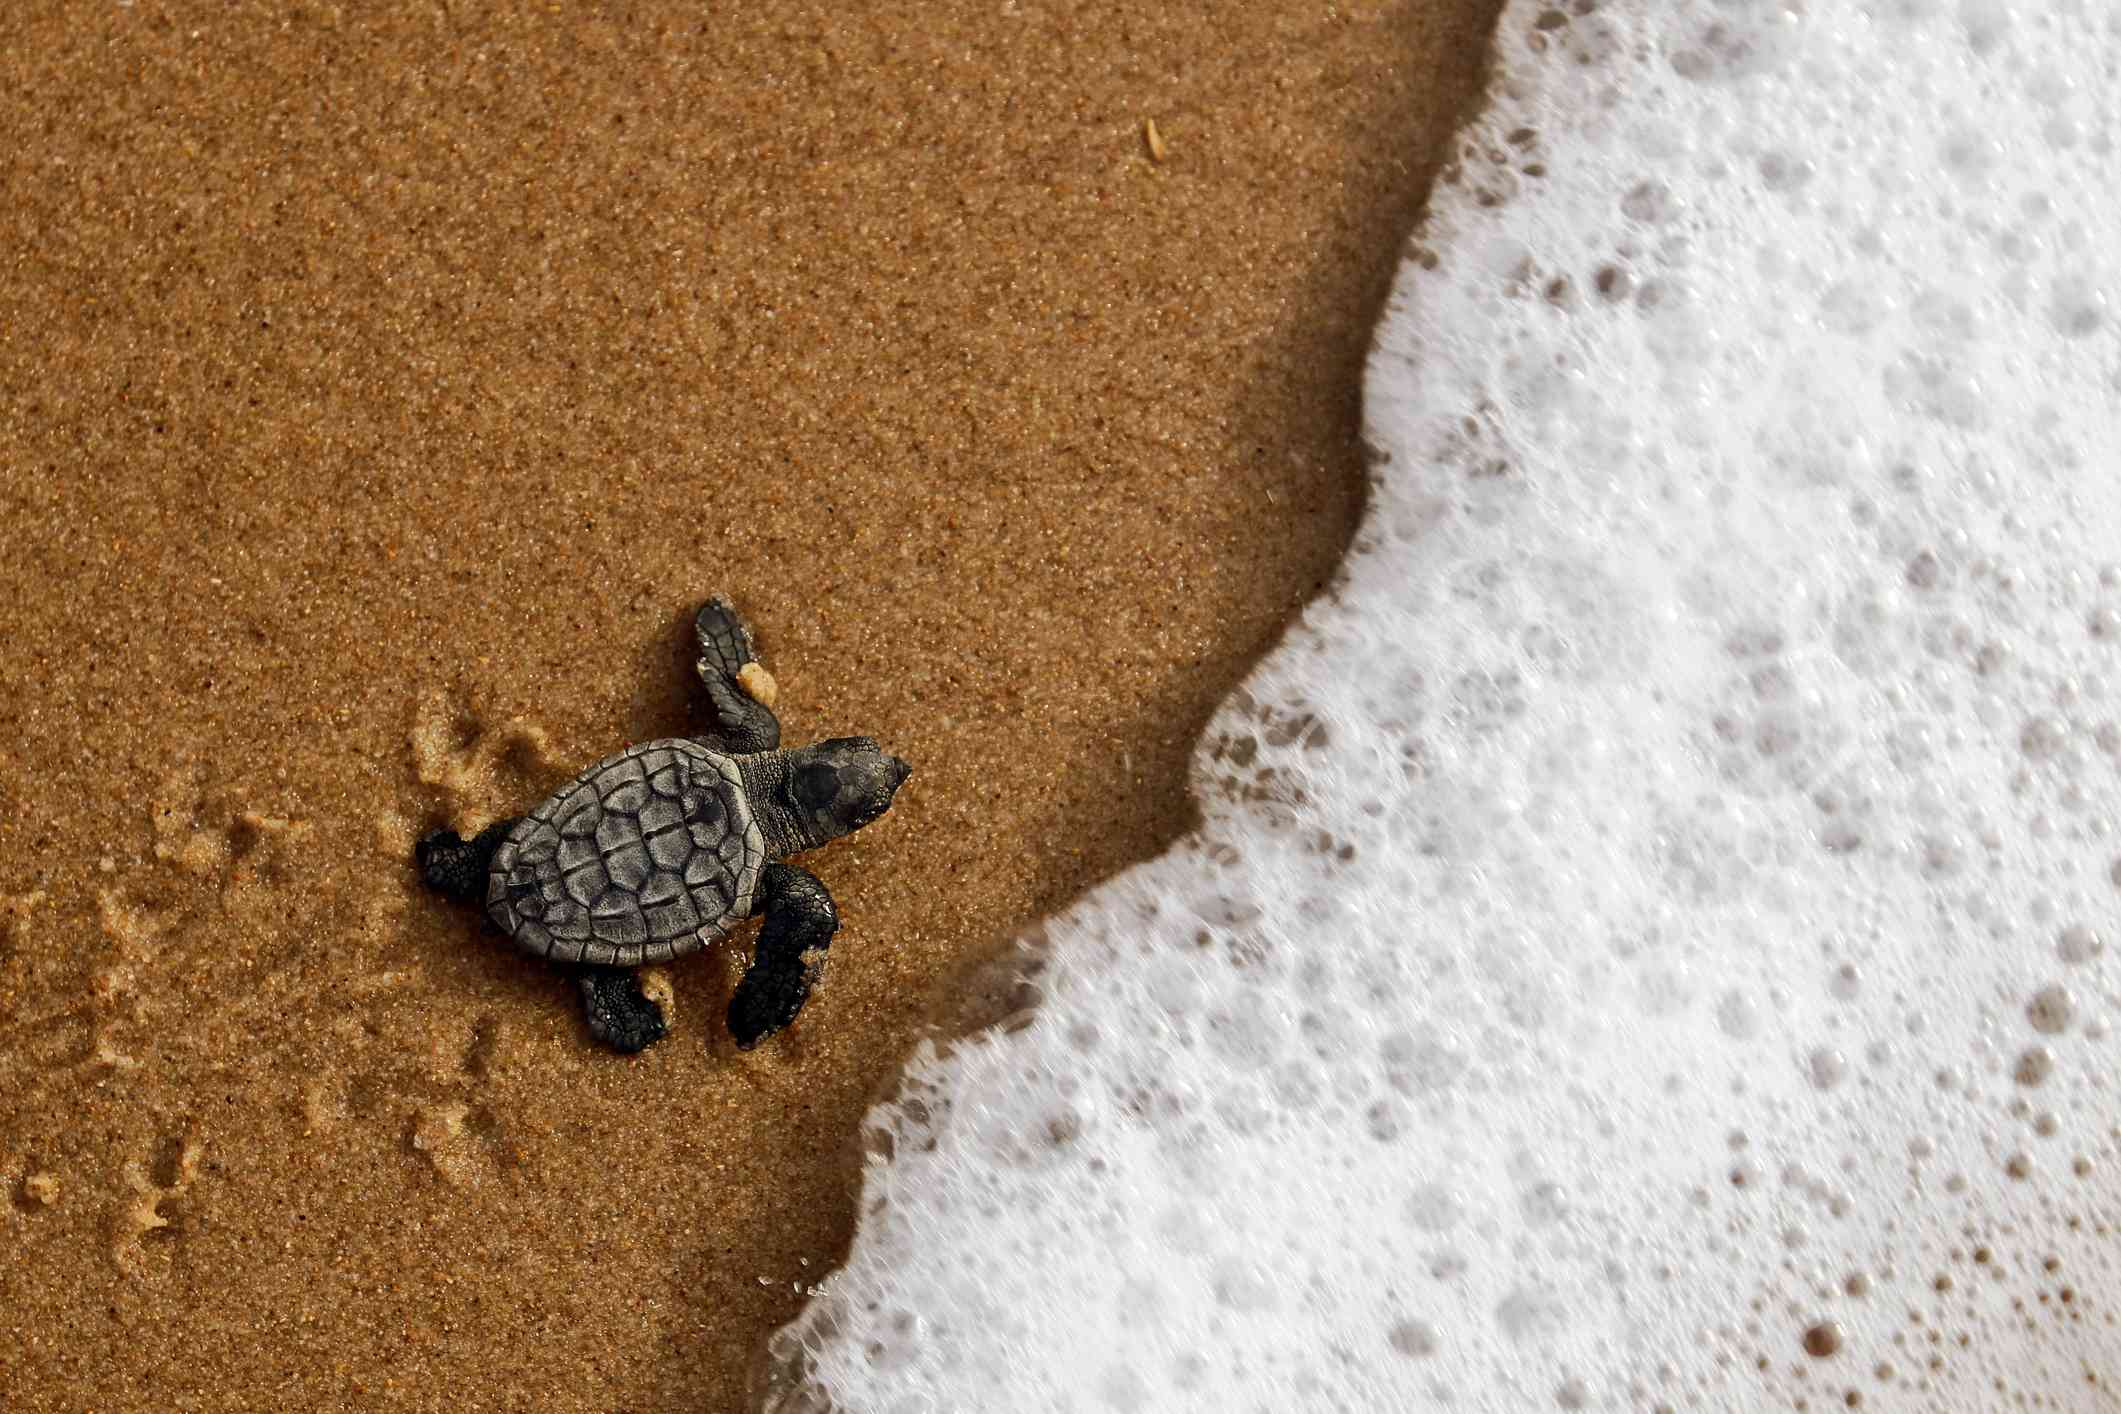 A hatching loggerhead sea turtle making its way to the ocean in Brazil.